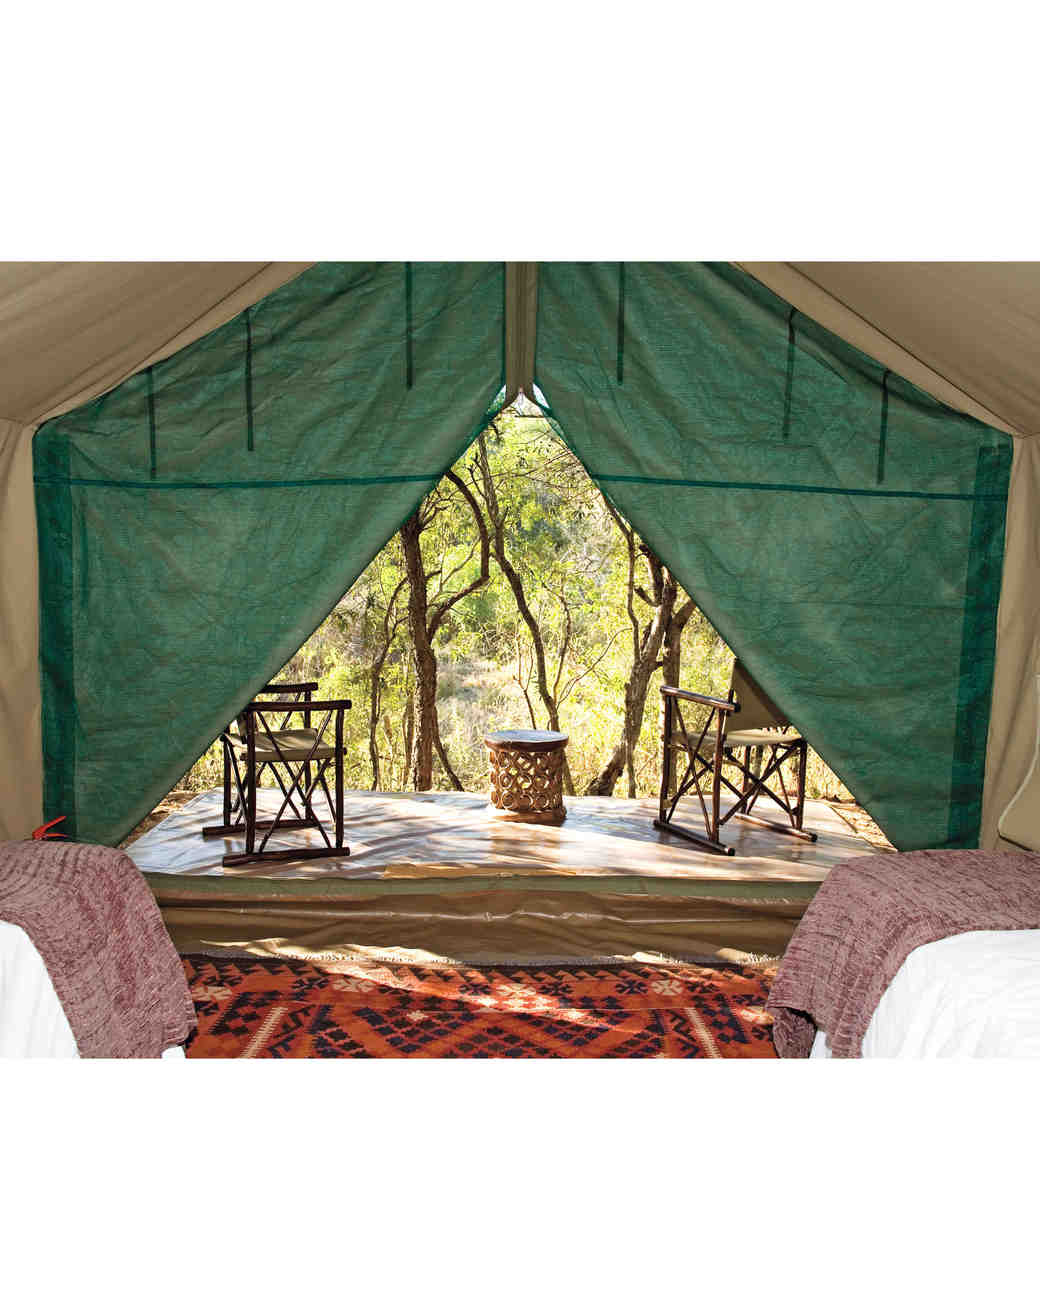 m-expert-advice-glamping-vacation-gettyimages-83387630-s112893.jpg